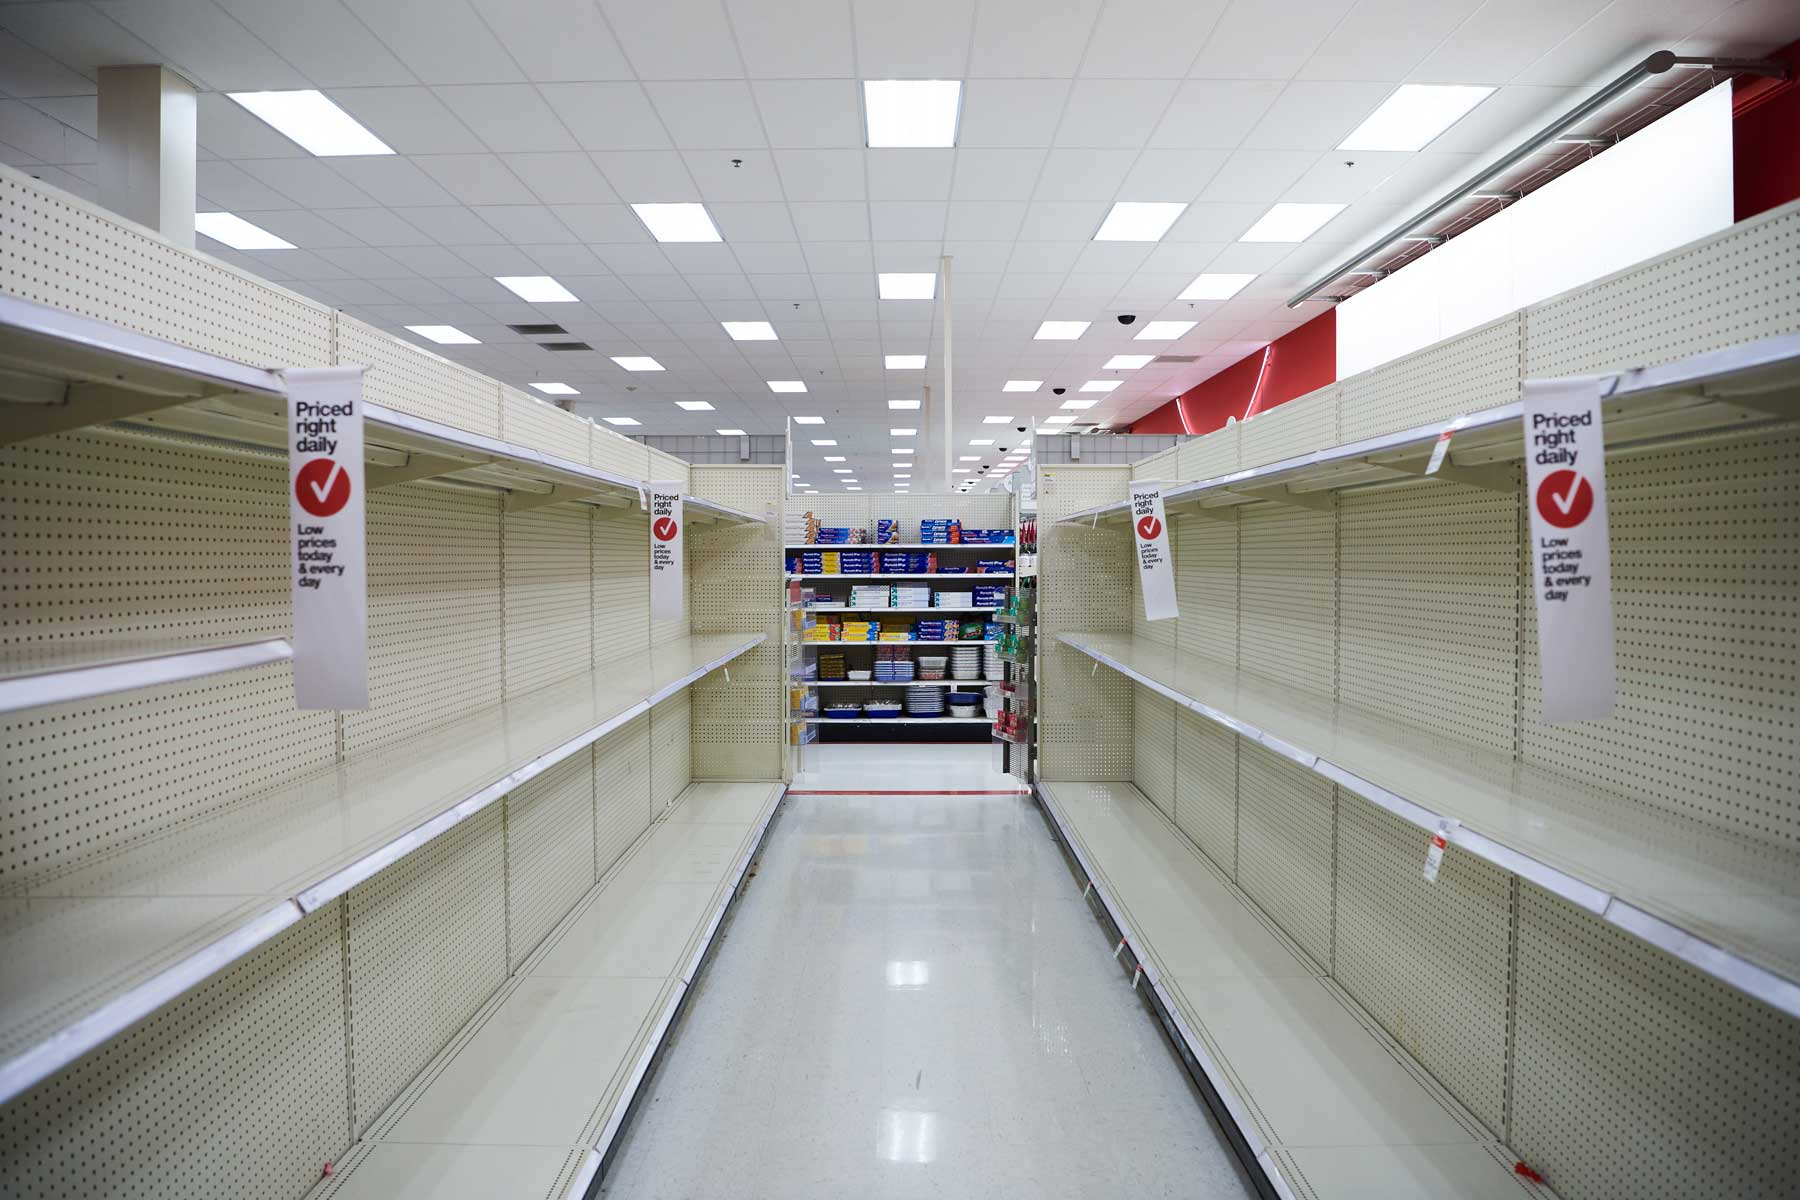 Shelves at the Target department store in Wadsworth, Ohio are empty of supplies such as toilet paper and sanitizer a day after Ohio Governor Mike DeWine put in place a stay-at-home order.